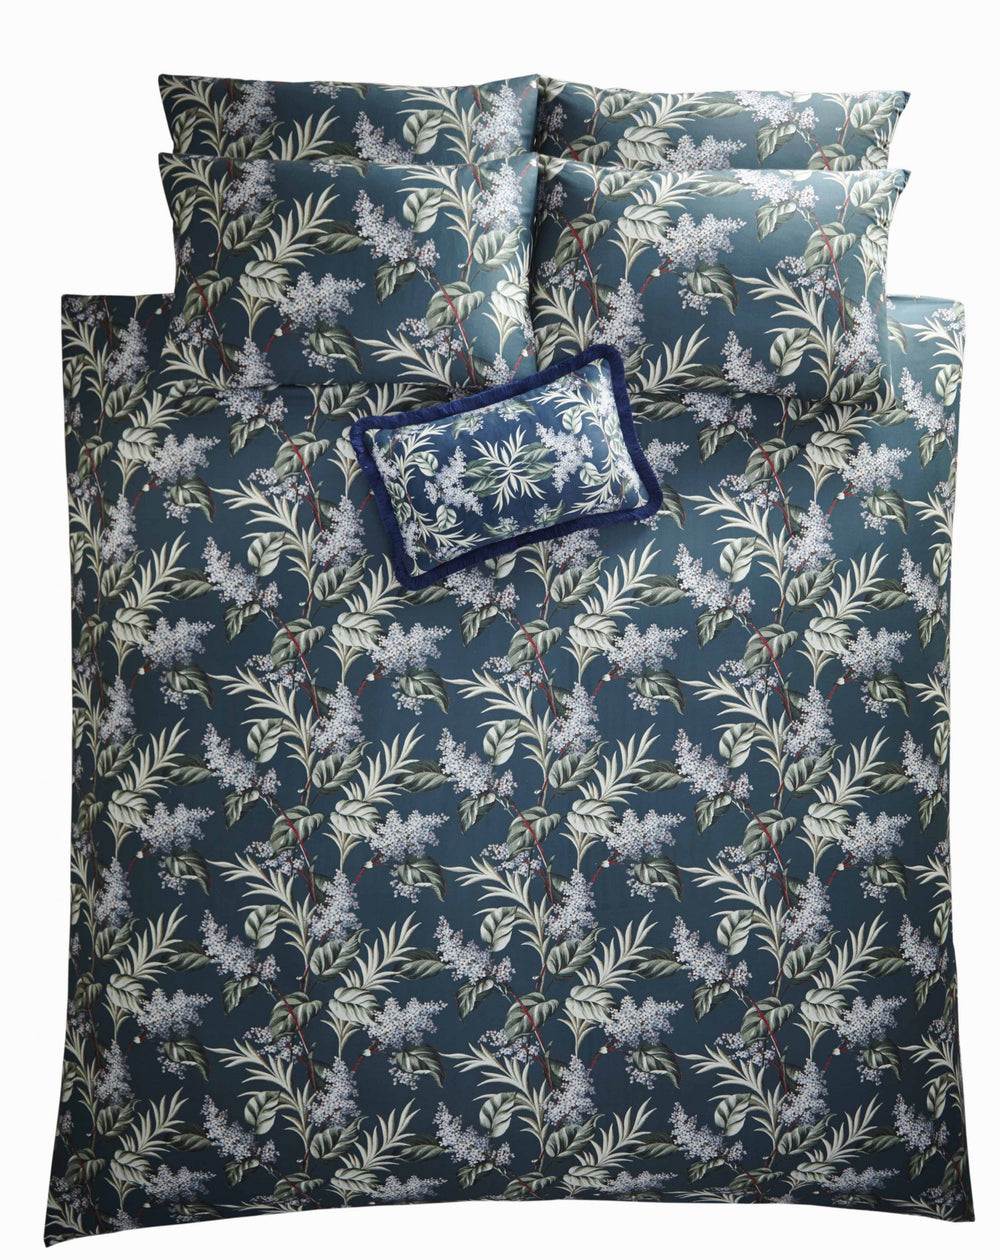 Oasis 'Aloha' Designer Floral Bedding Duvet Set in White, Blue & Green - Your 4 Walls